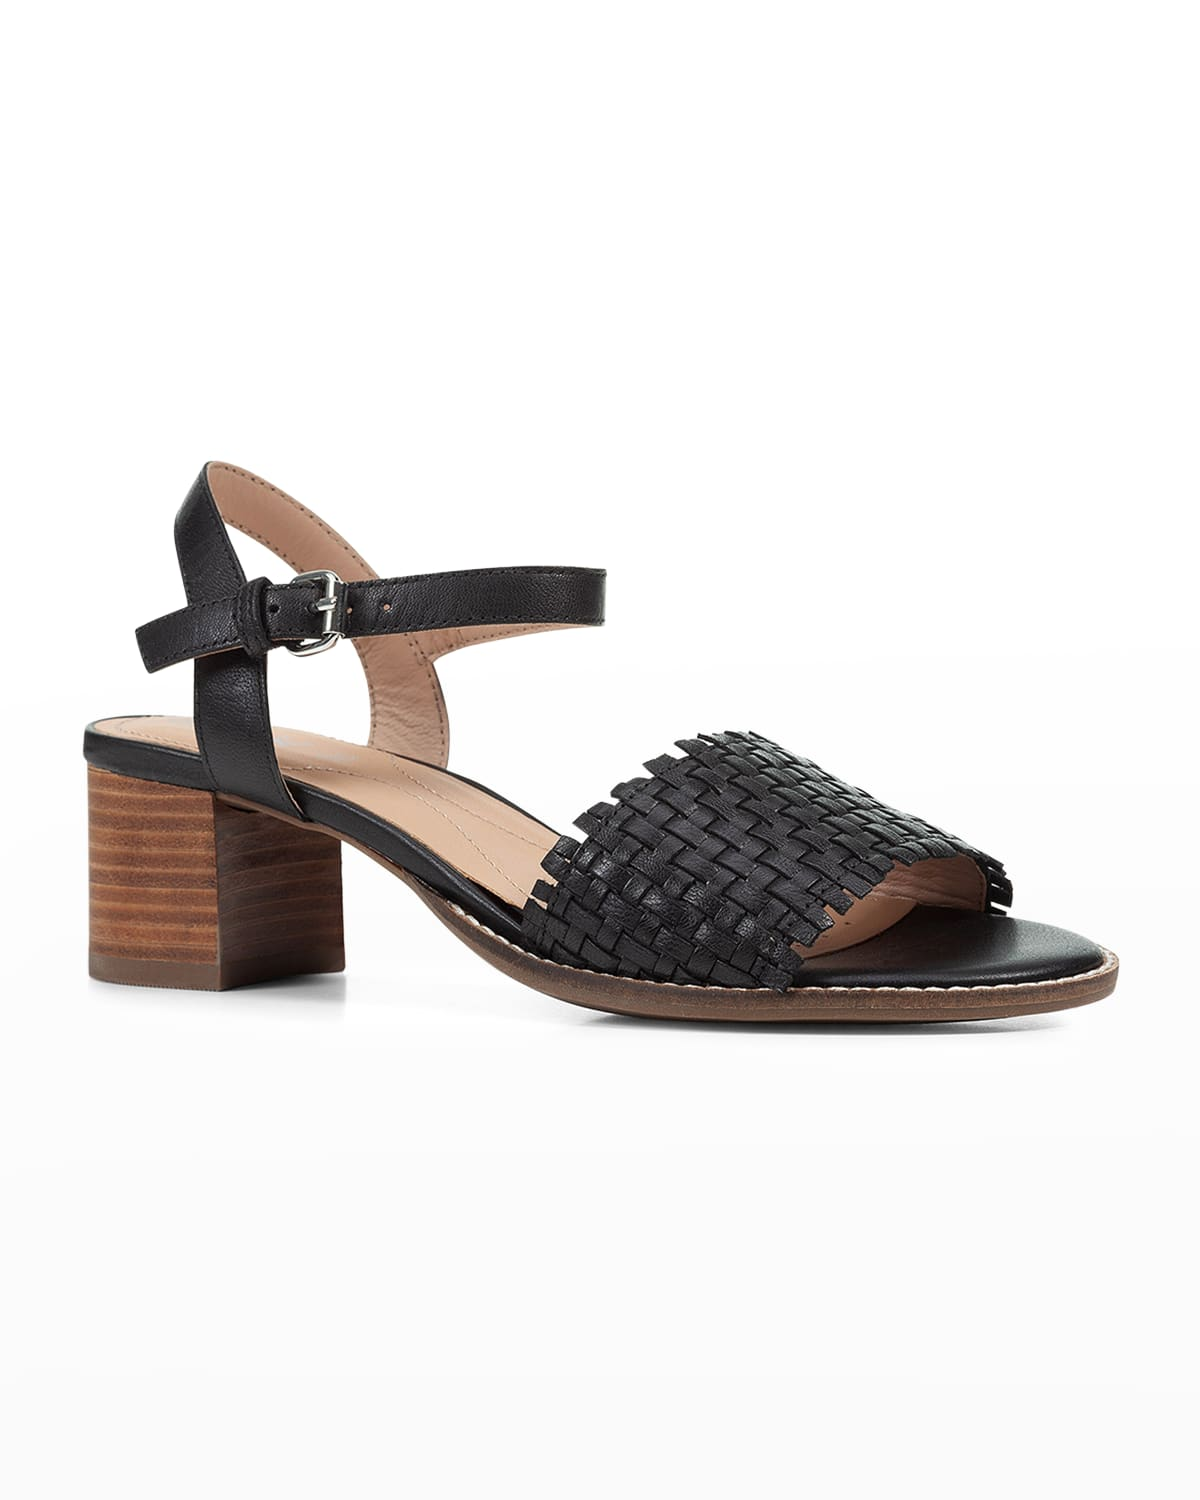 Woven Leather Ankle-Strap Sandals